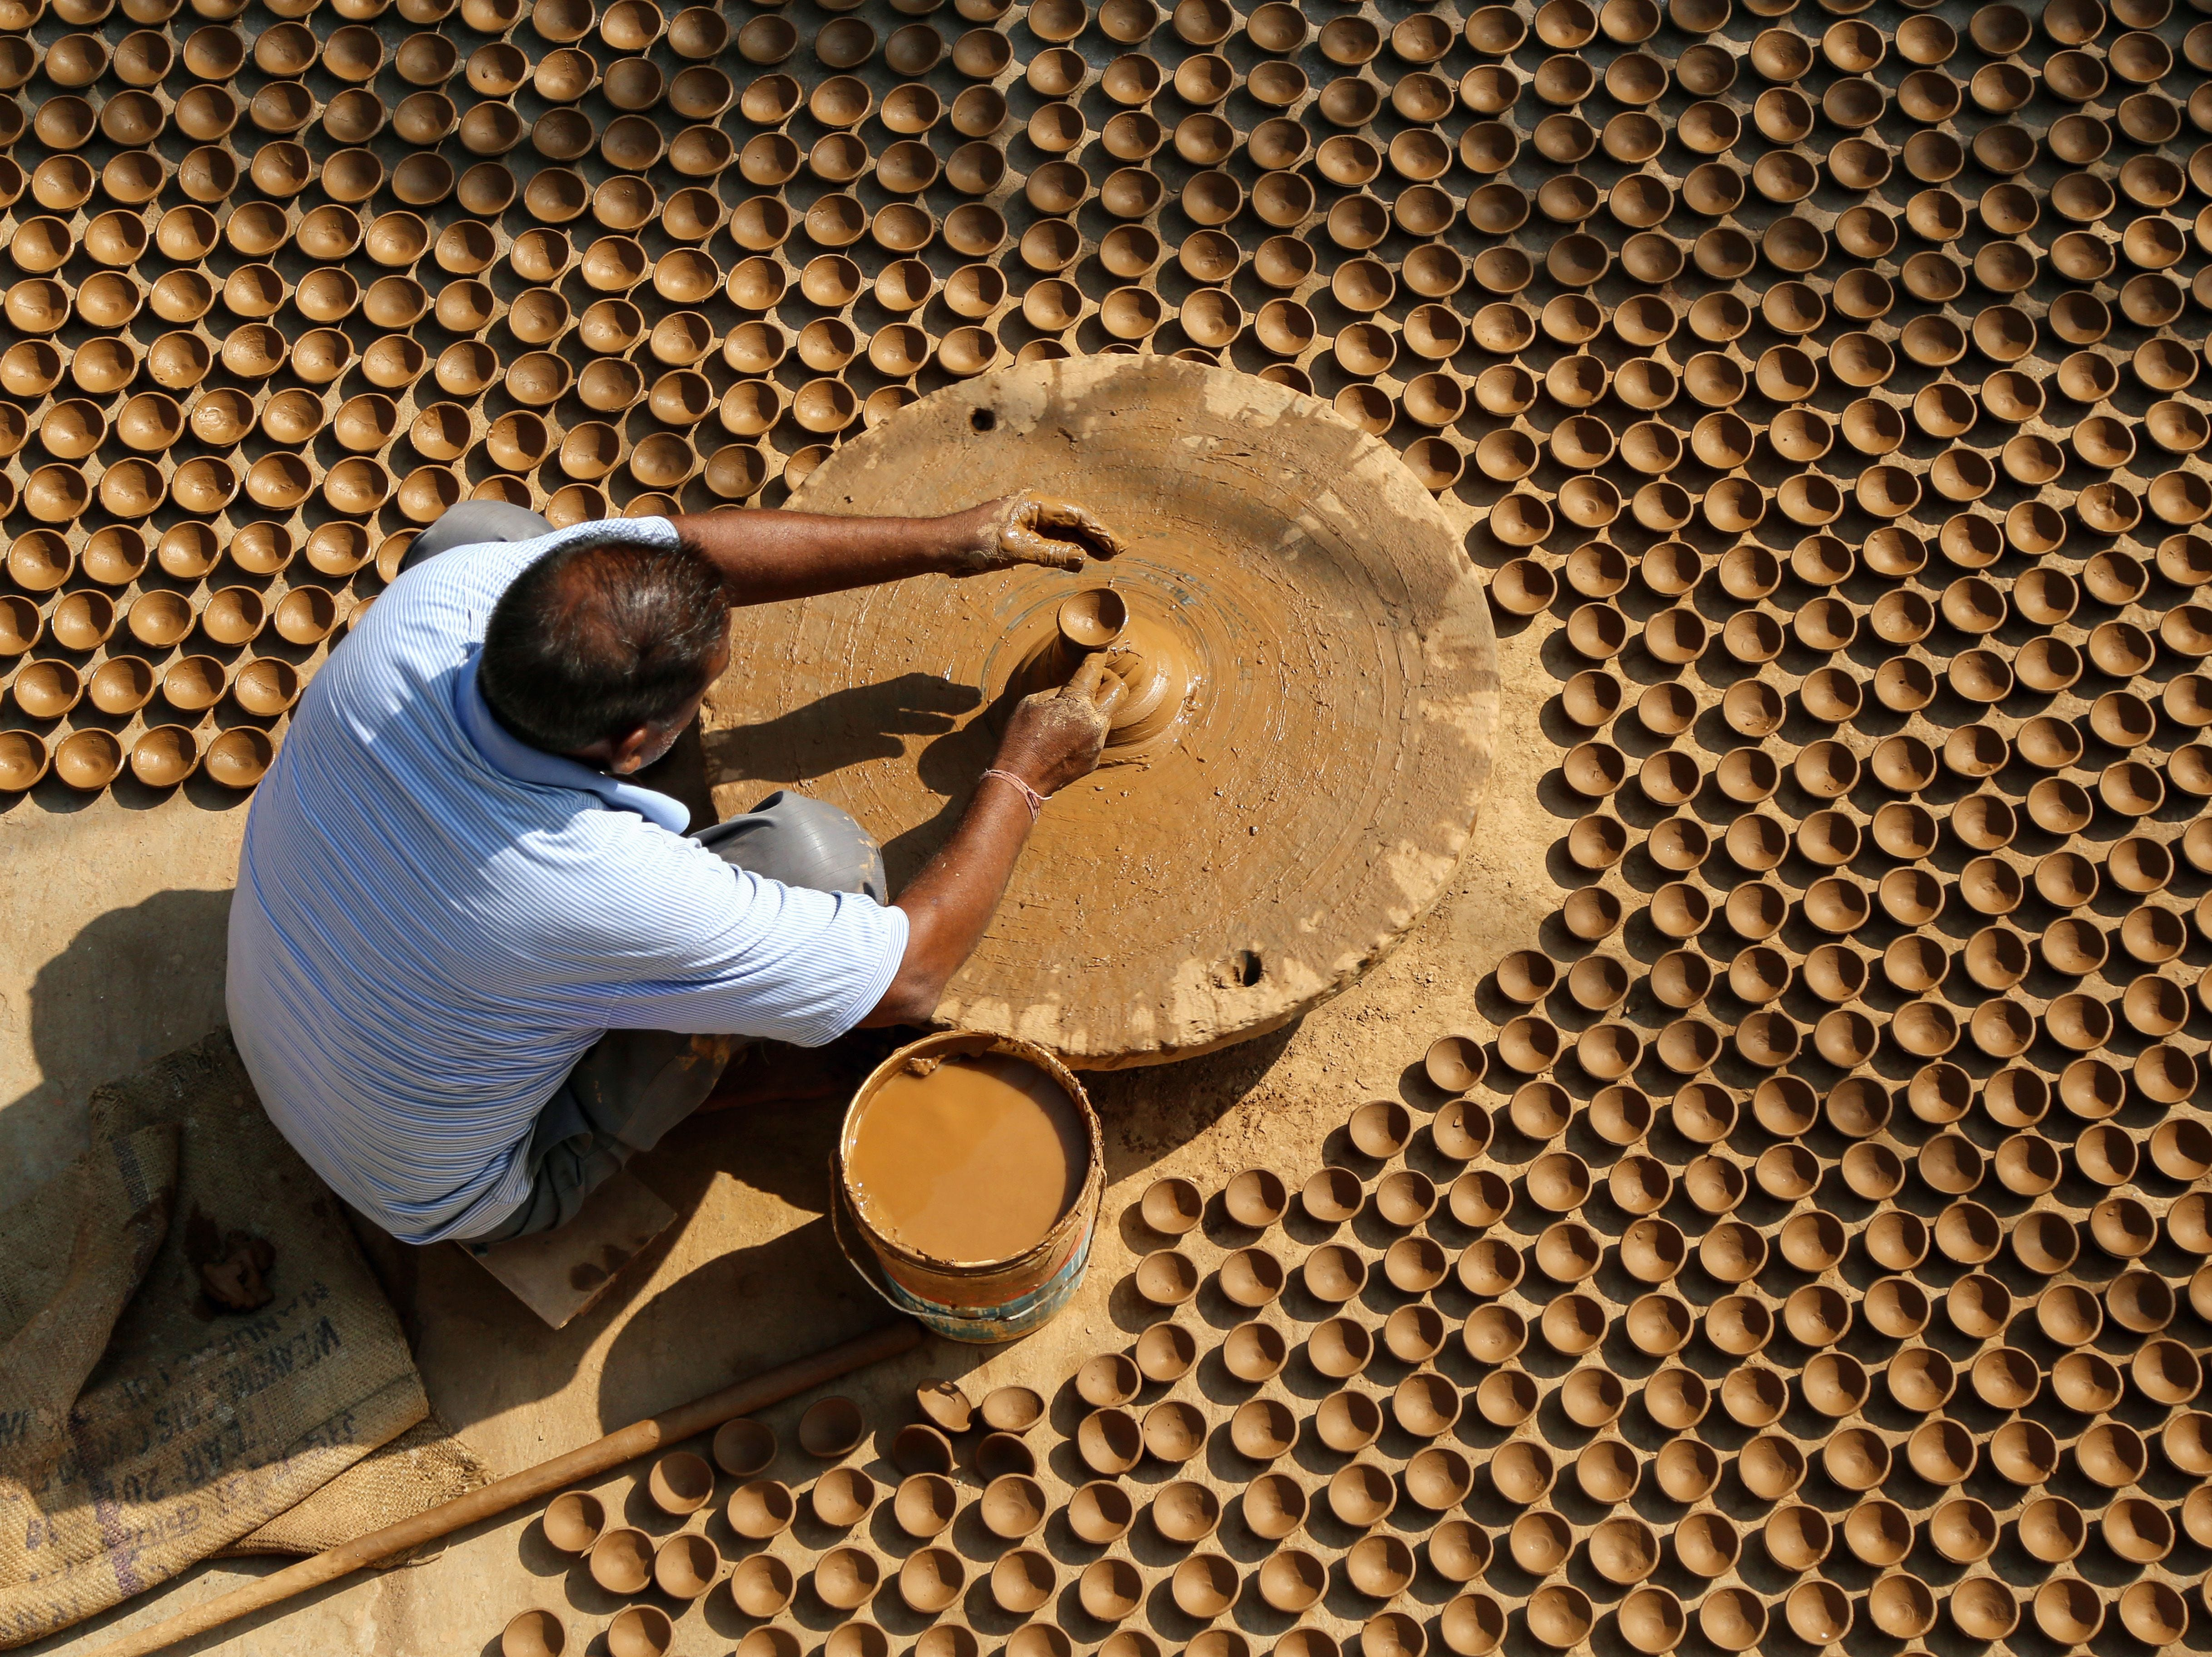 An Indian potter makes diyas (earthen lamps) ahead of the Hindu festival Diwali in Ajmer, in the Indian state of Rajasthan, on October 22, 2018. - The Hindu festival Diwali, or Festival of Lights, will be celebrated in 2018 on November 7.